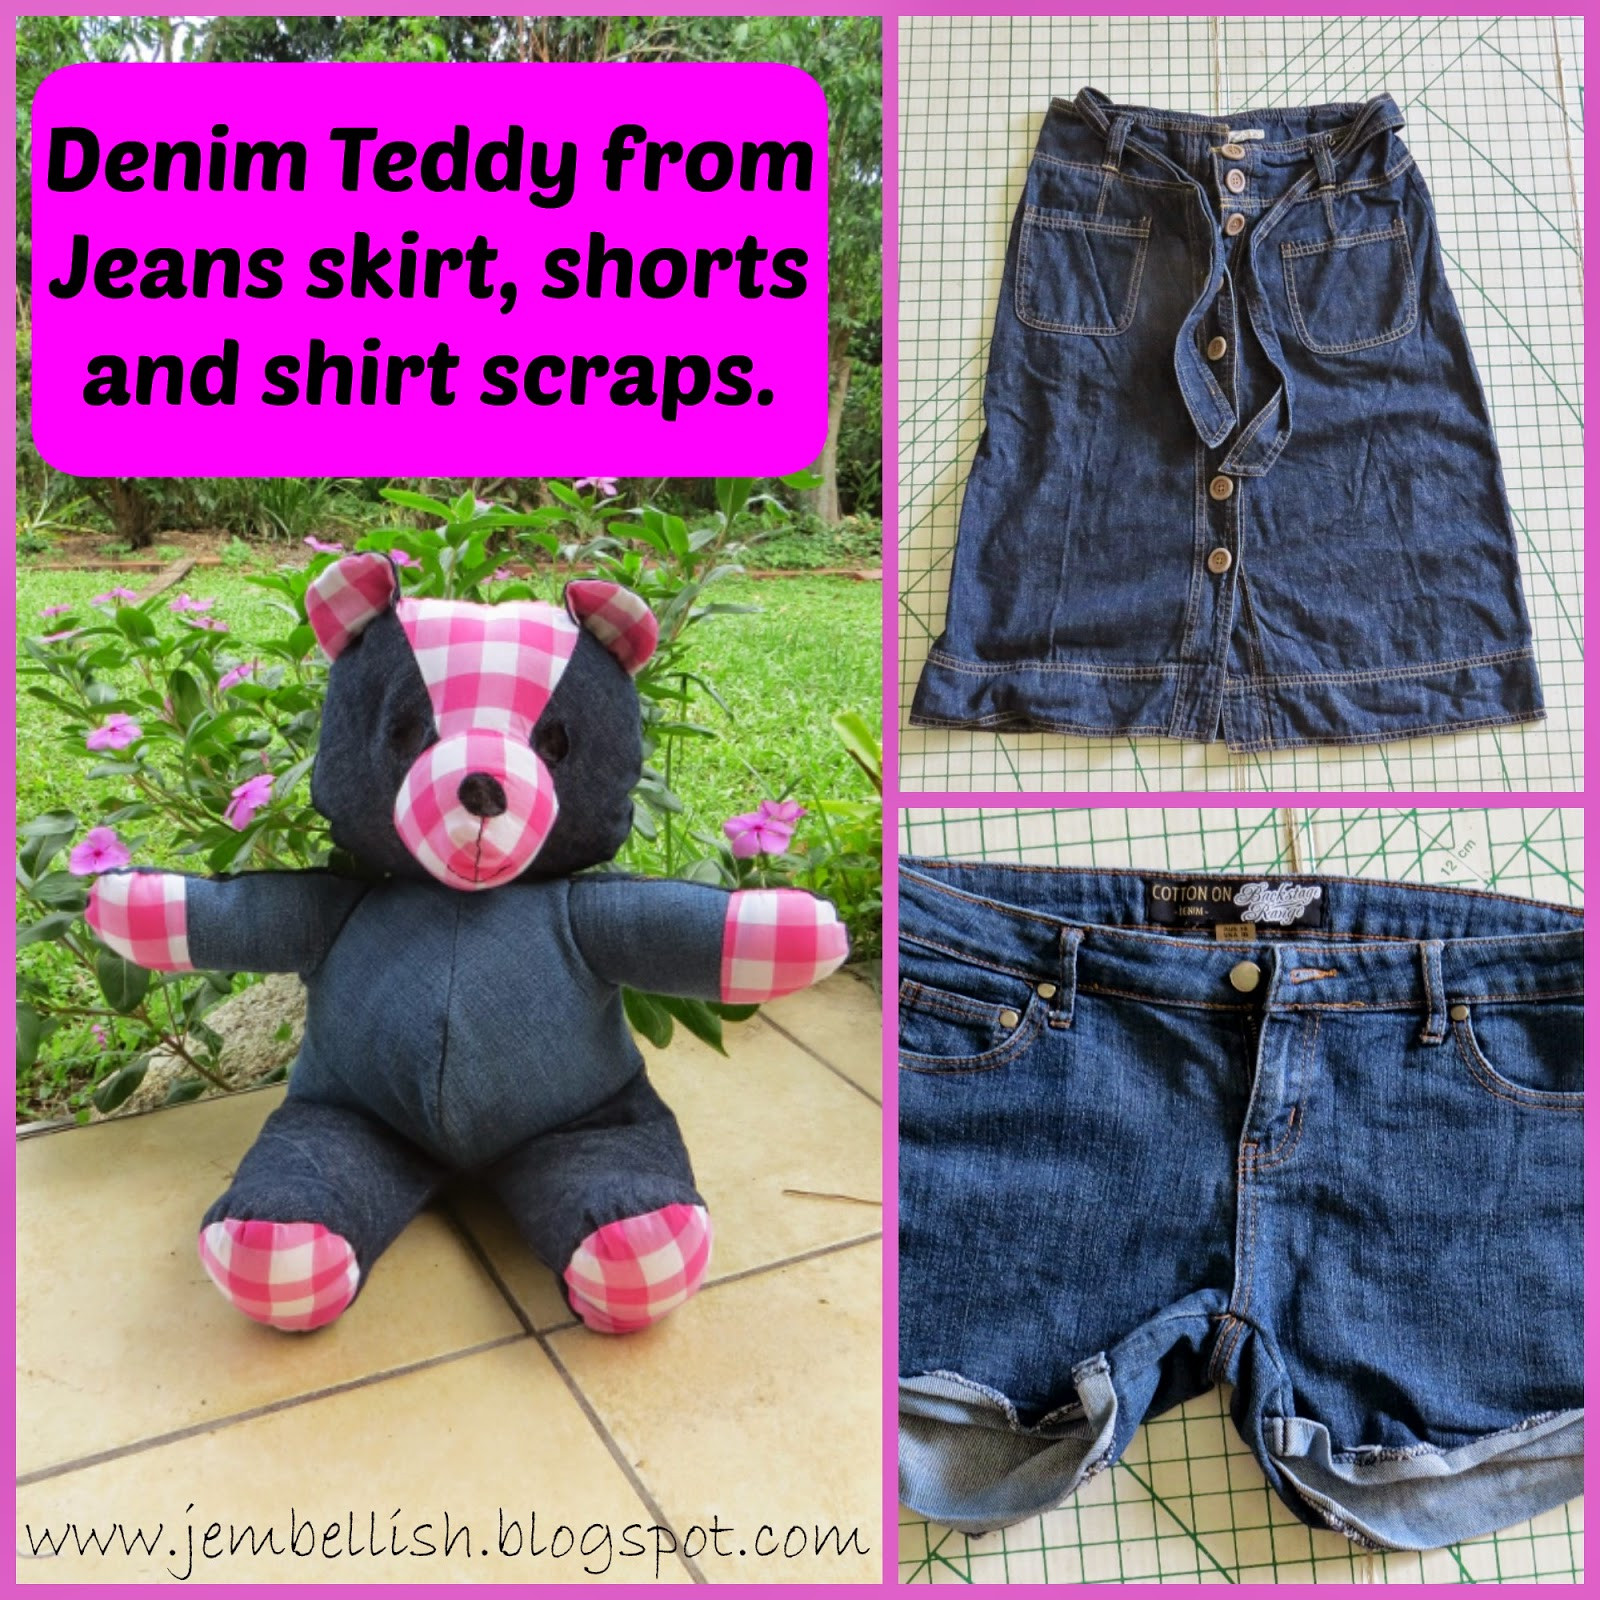 Best ideas about DIY Teddy Bear . Save or Pin DIY Denim Teddy Bears Using Old Jeans Now.